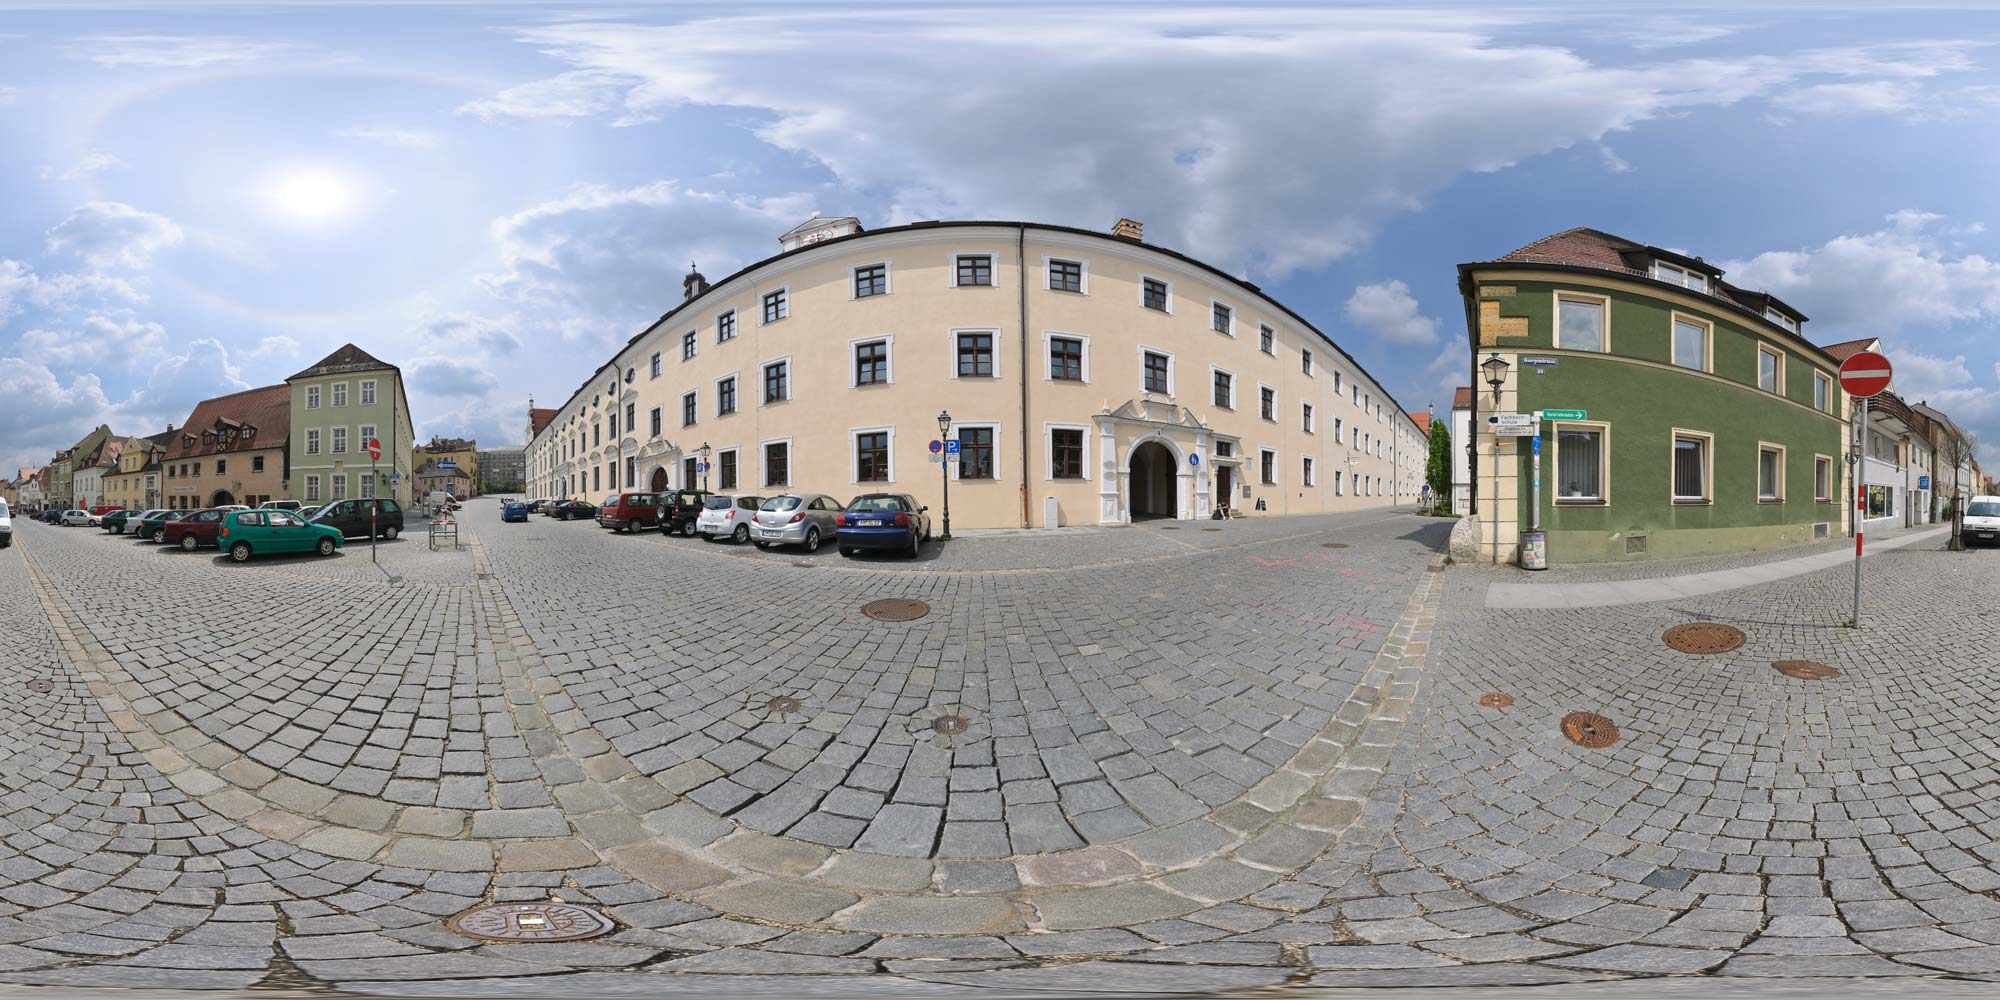 Panorama  Amberg - Malteserplatz